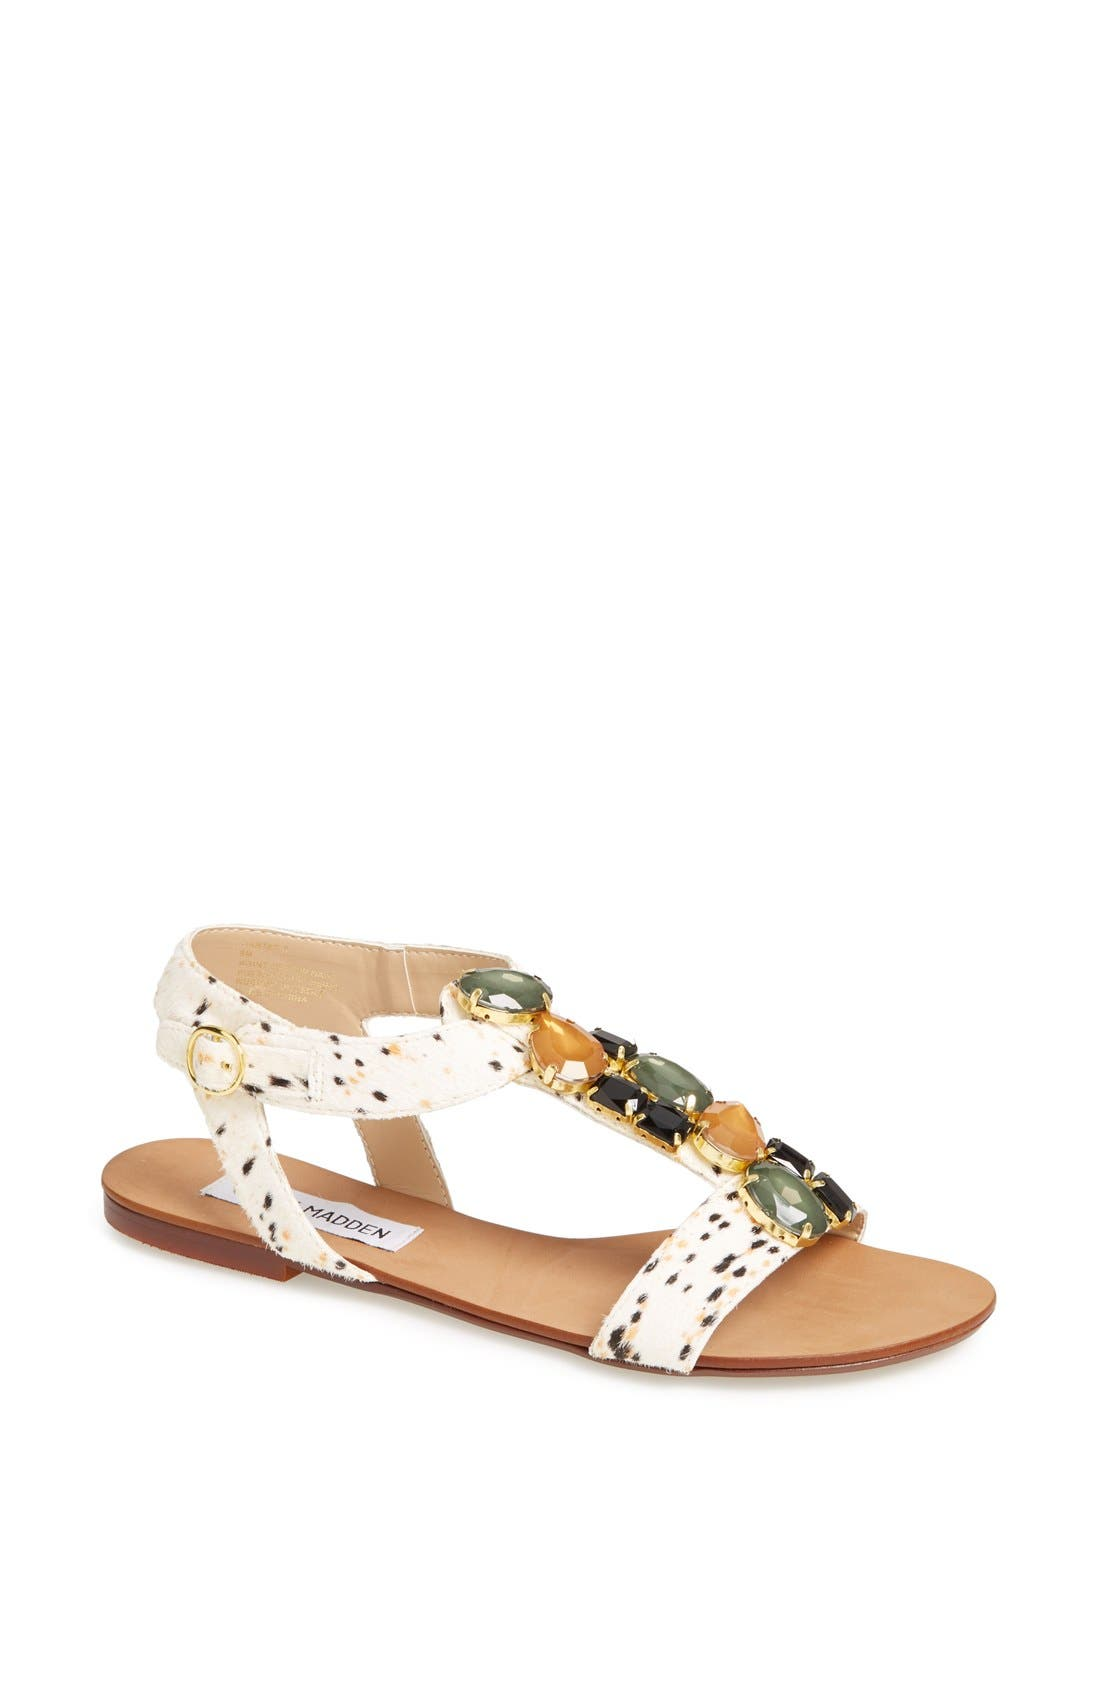 Alternate Image 1 Selected - Steve Madden 'Habtat-S' Calf Hair Sandal